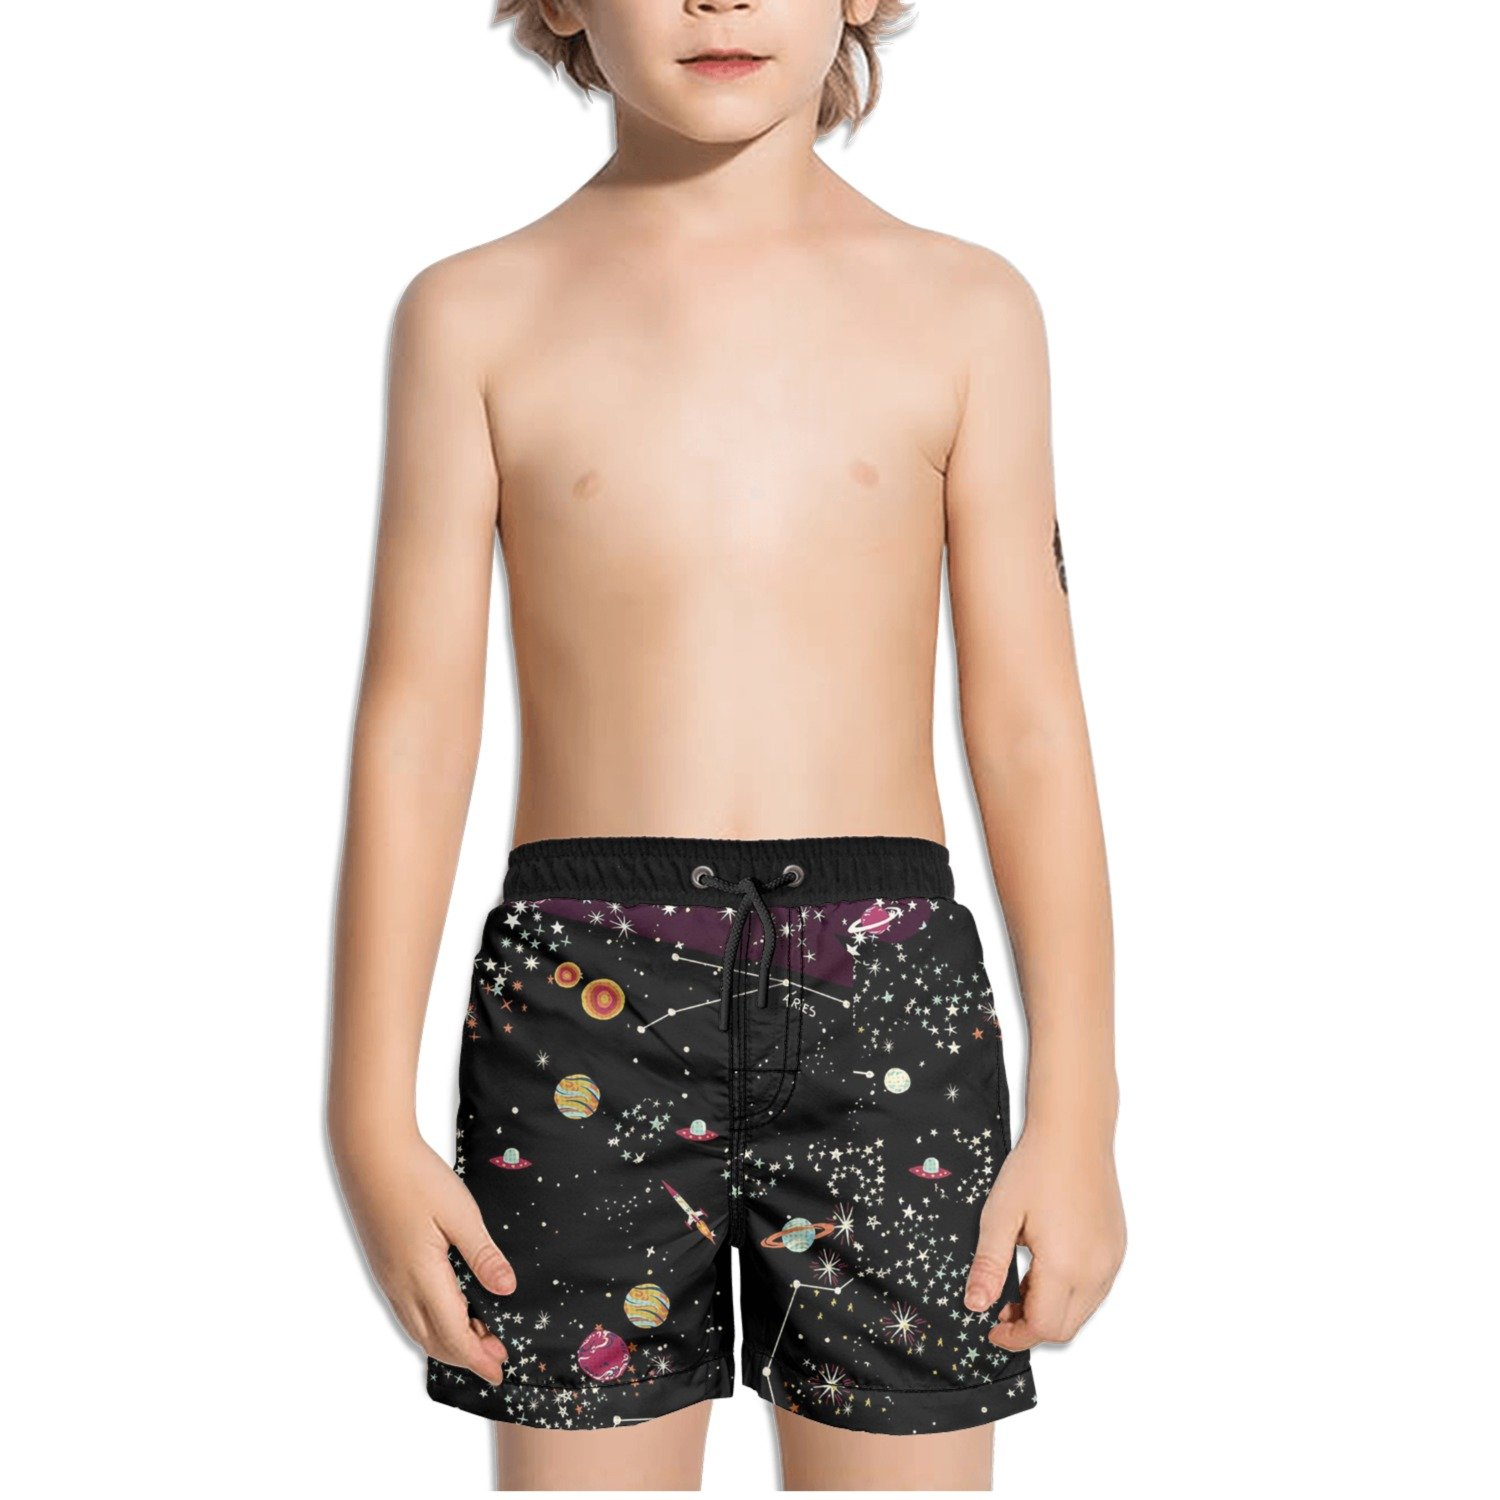 Ouxioaz Boys Swim Trunk Space Stars Beach Board Shorts